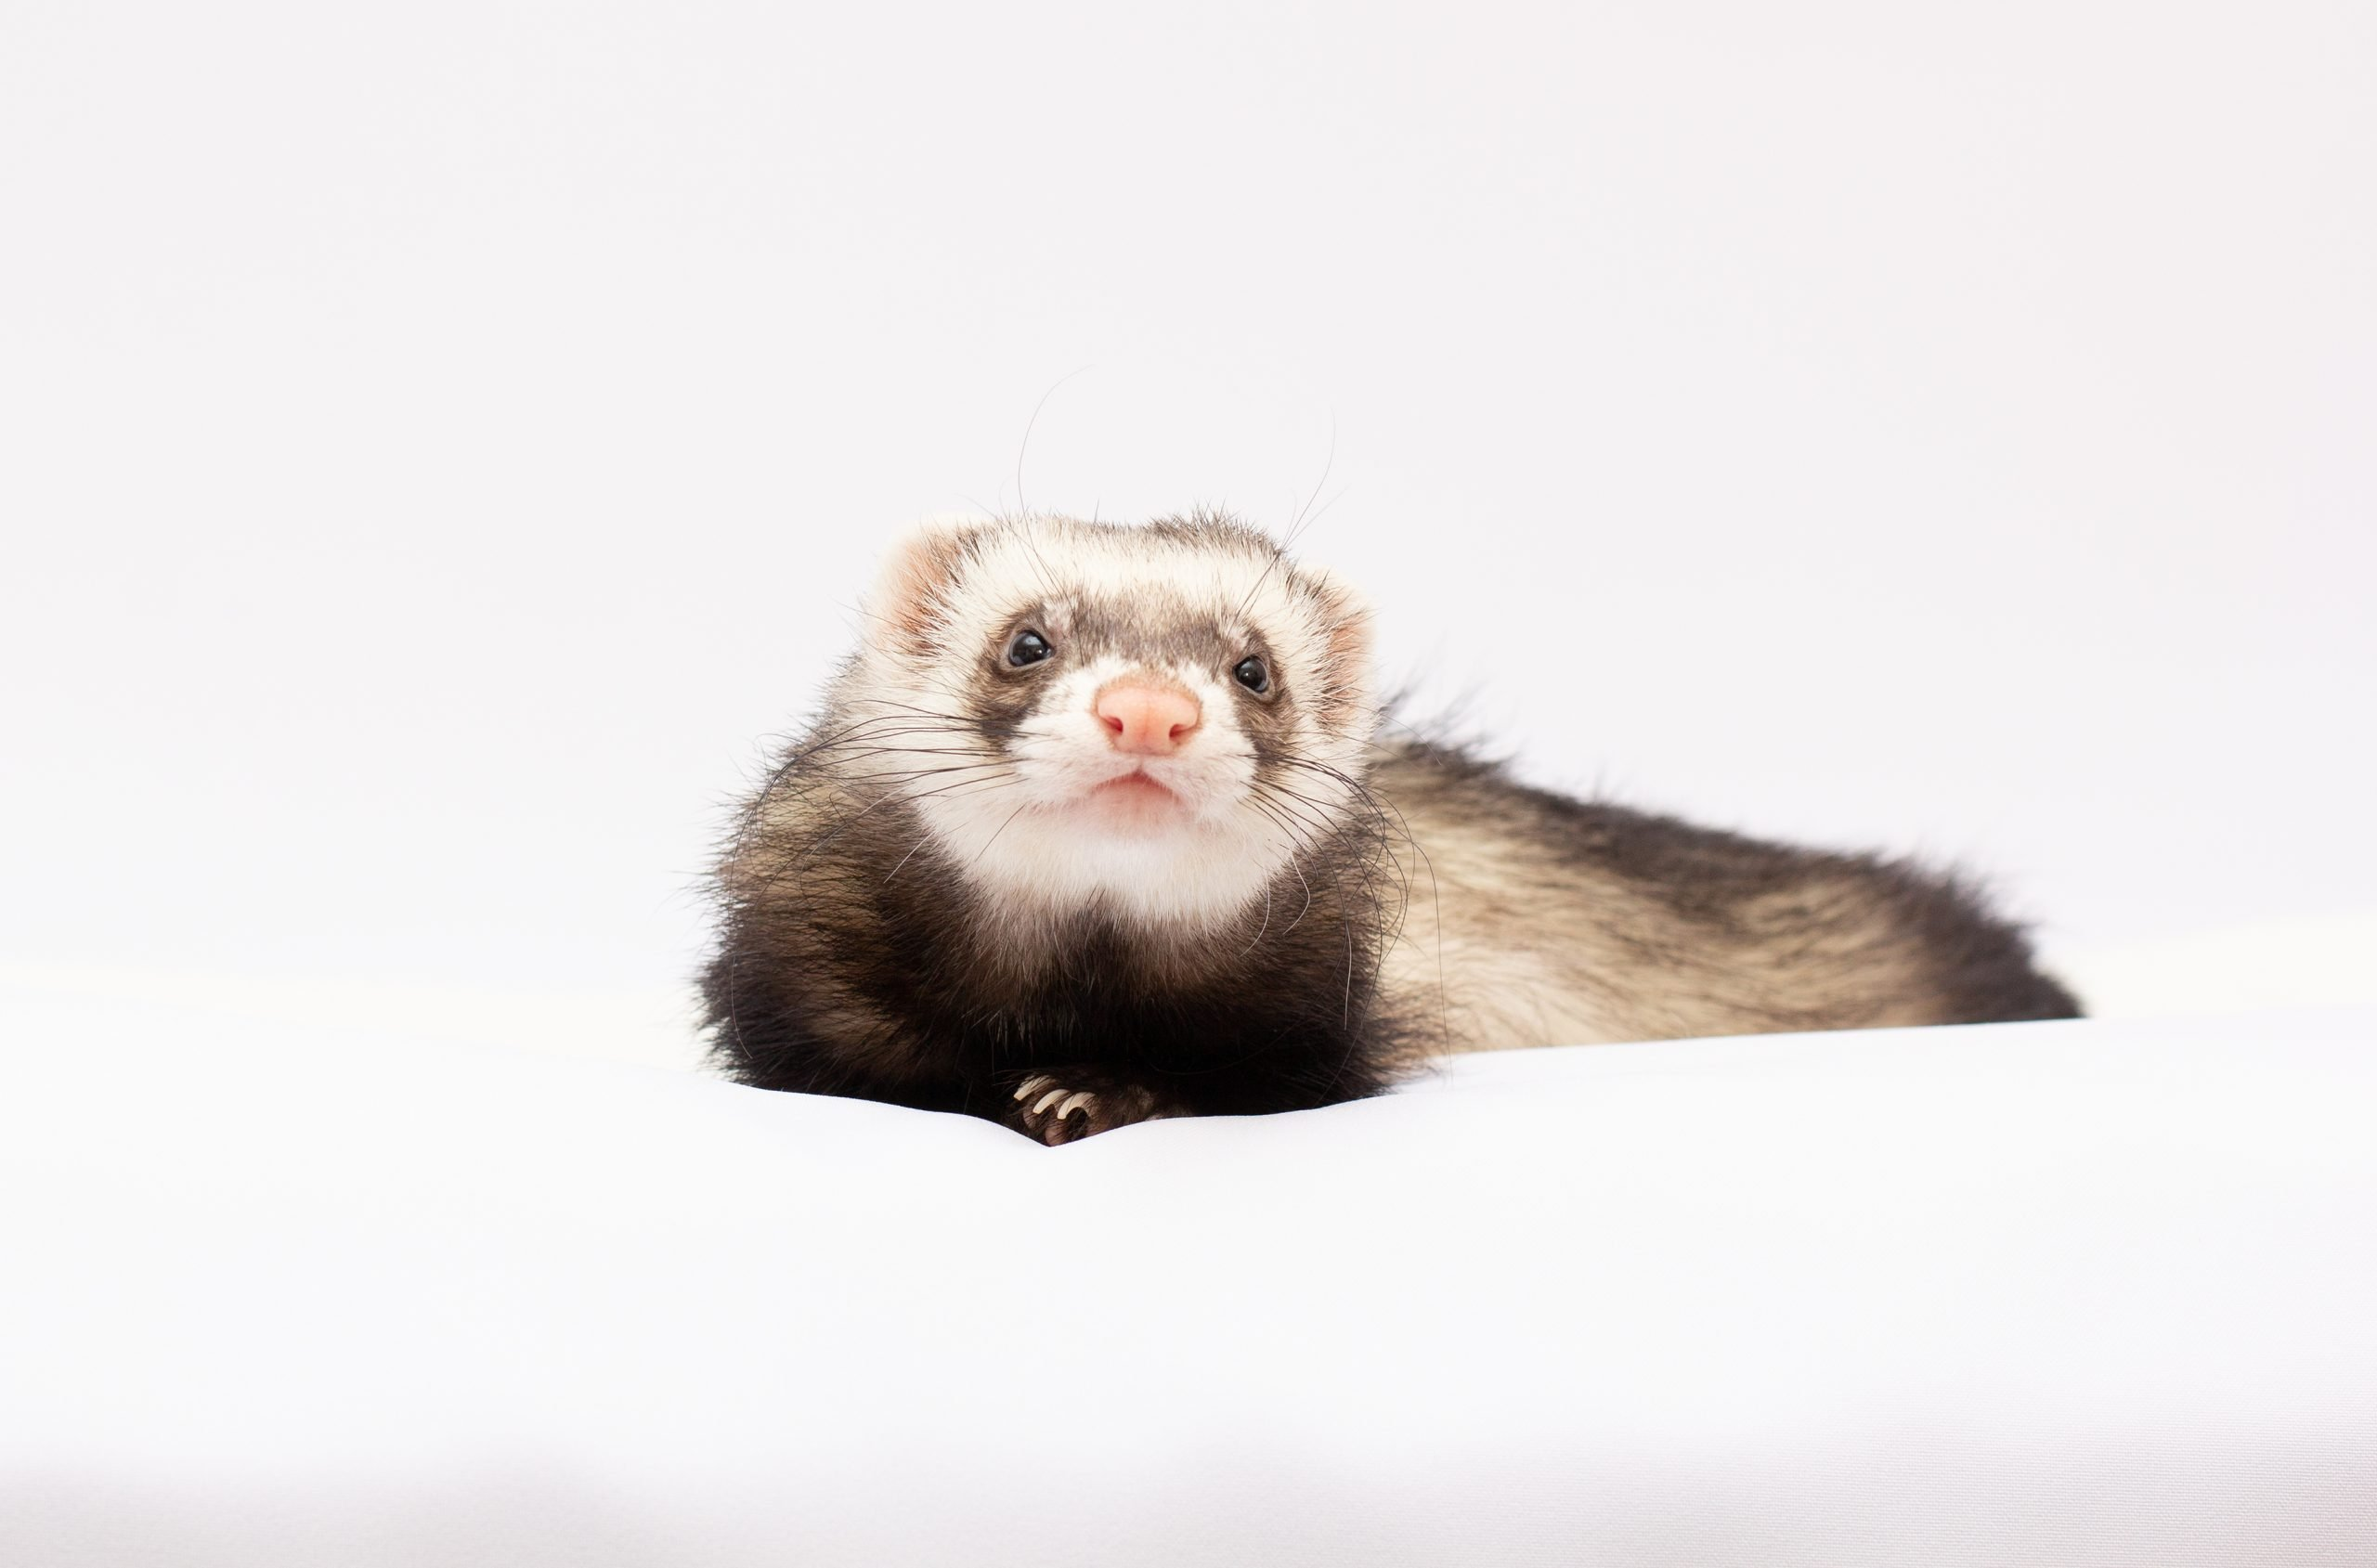 ferret in front of a white background